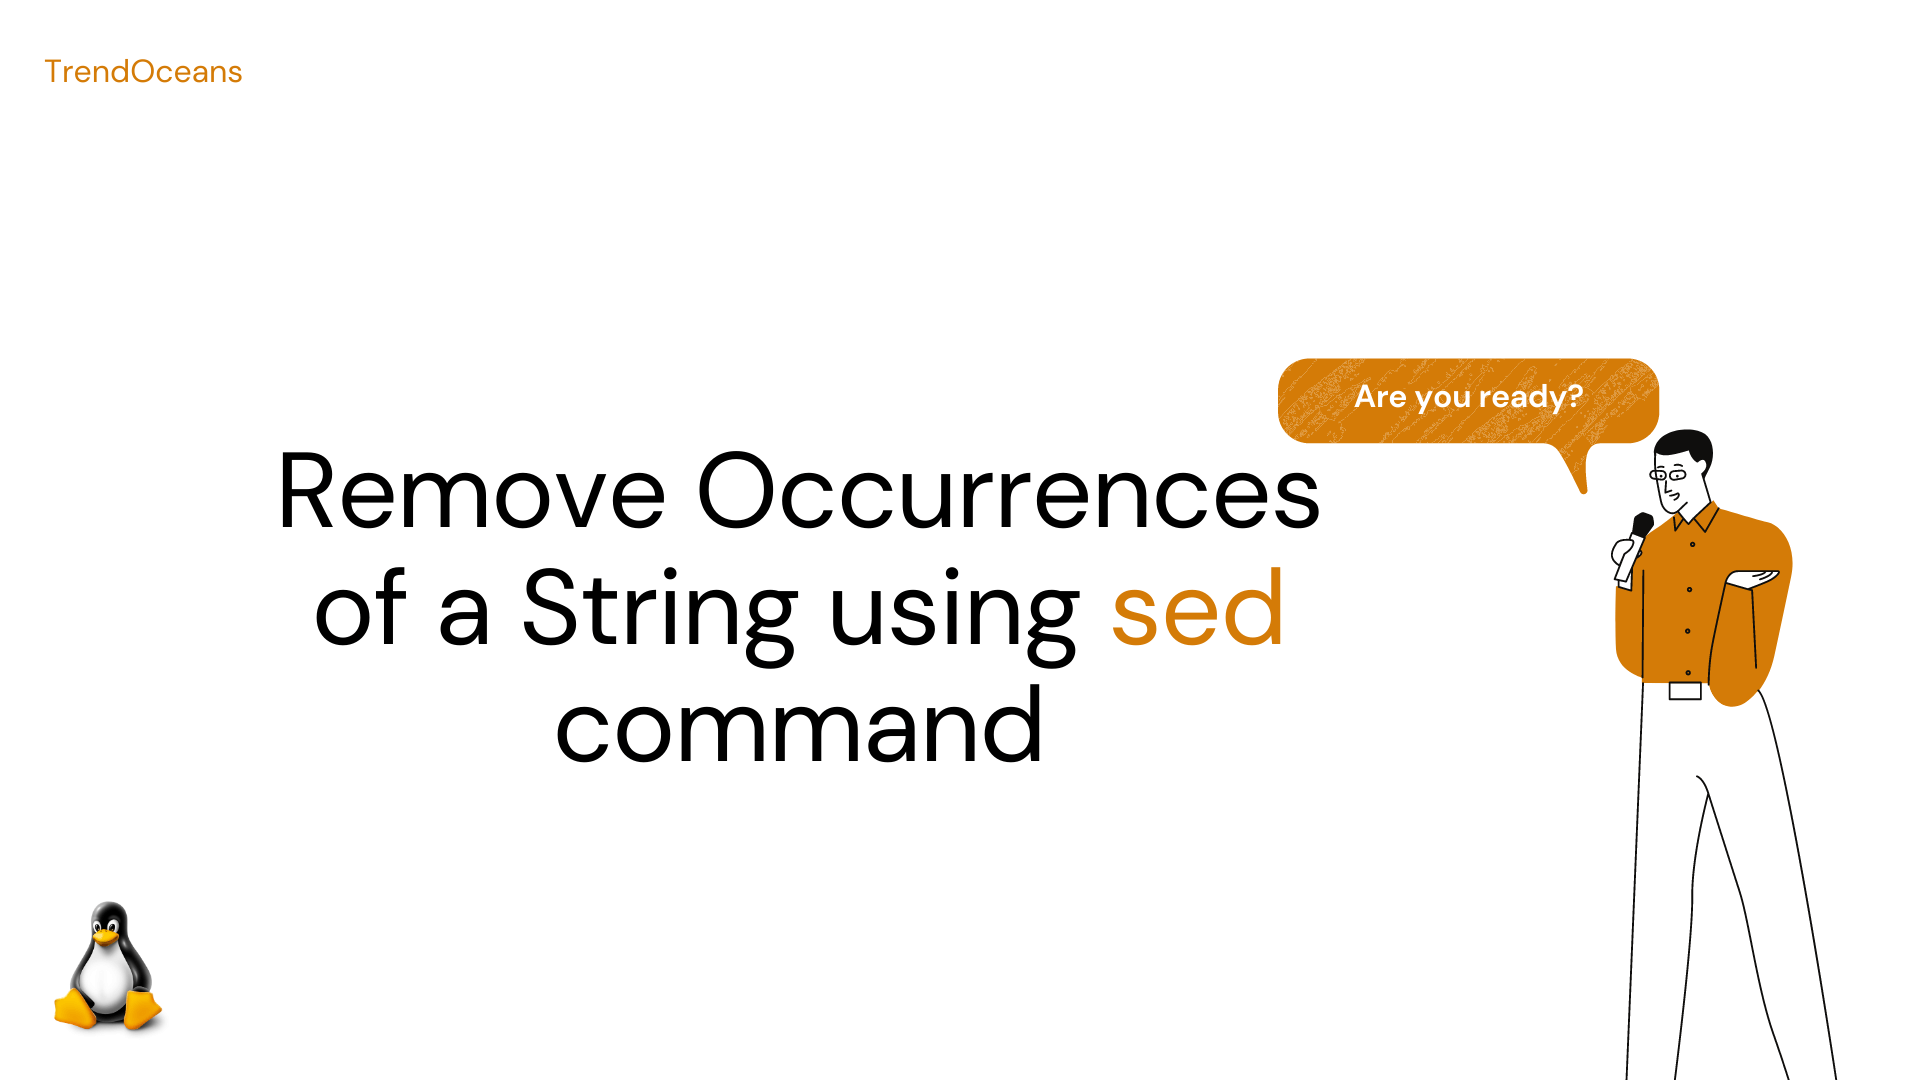 How to Remove Occurrences of a String using sed command